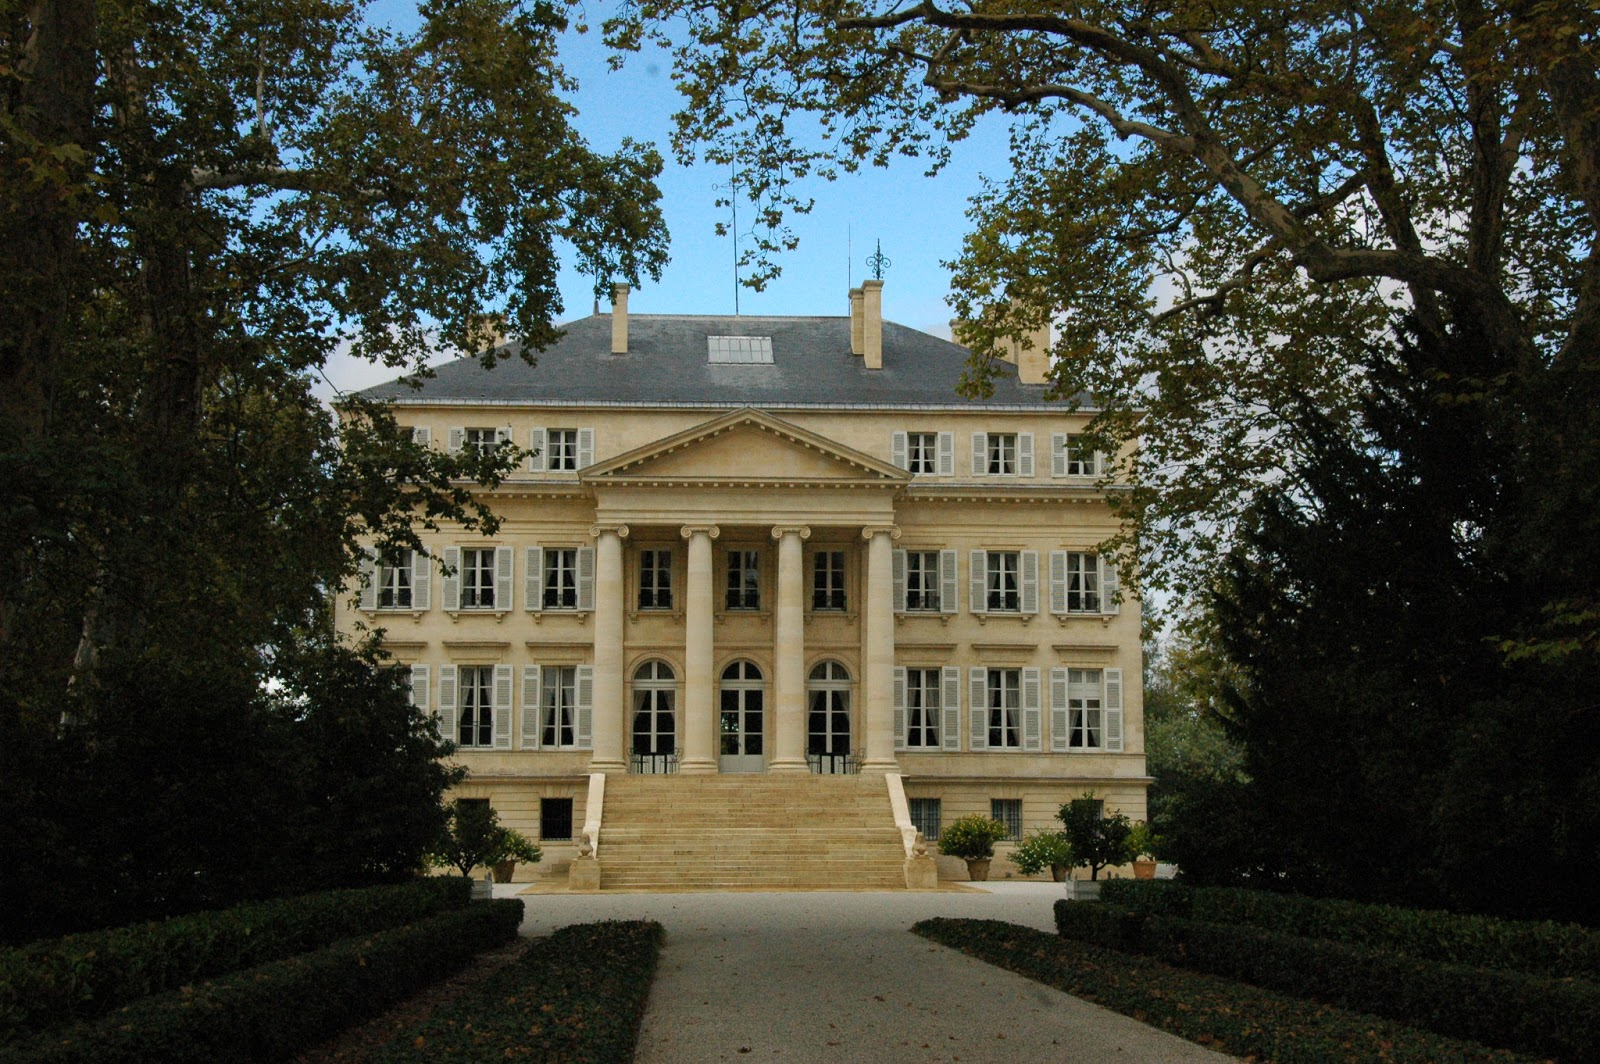 My wines and more lunch at ch teau margaux for Chateau margaux